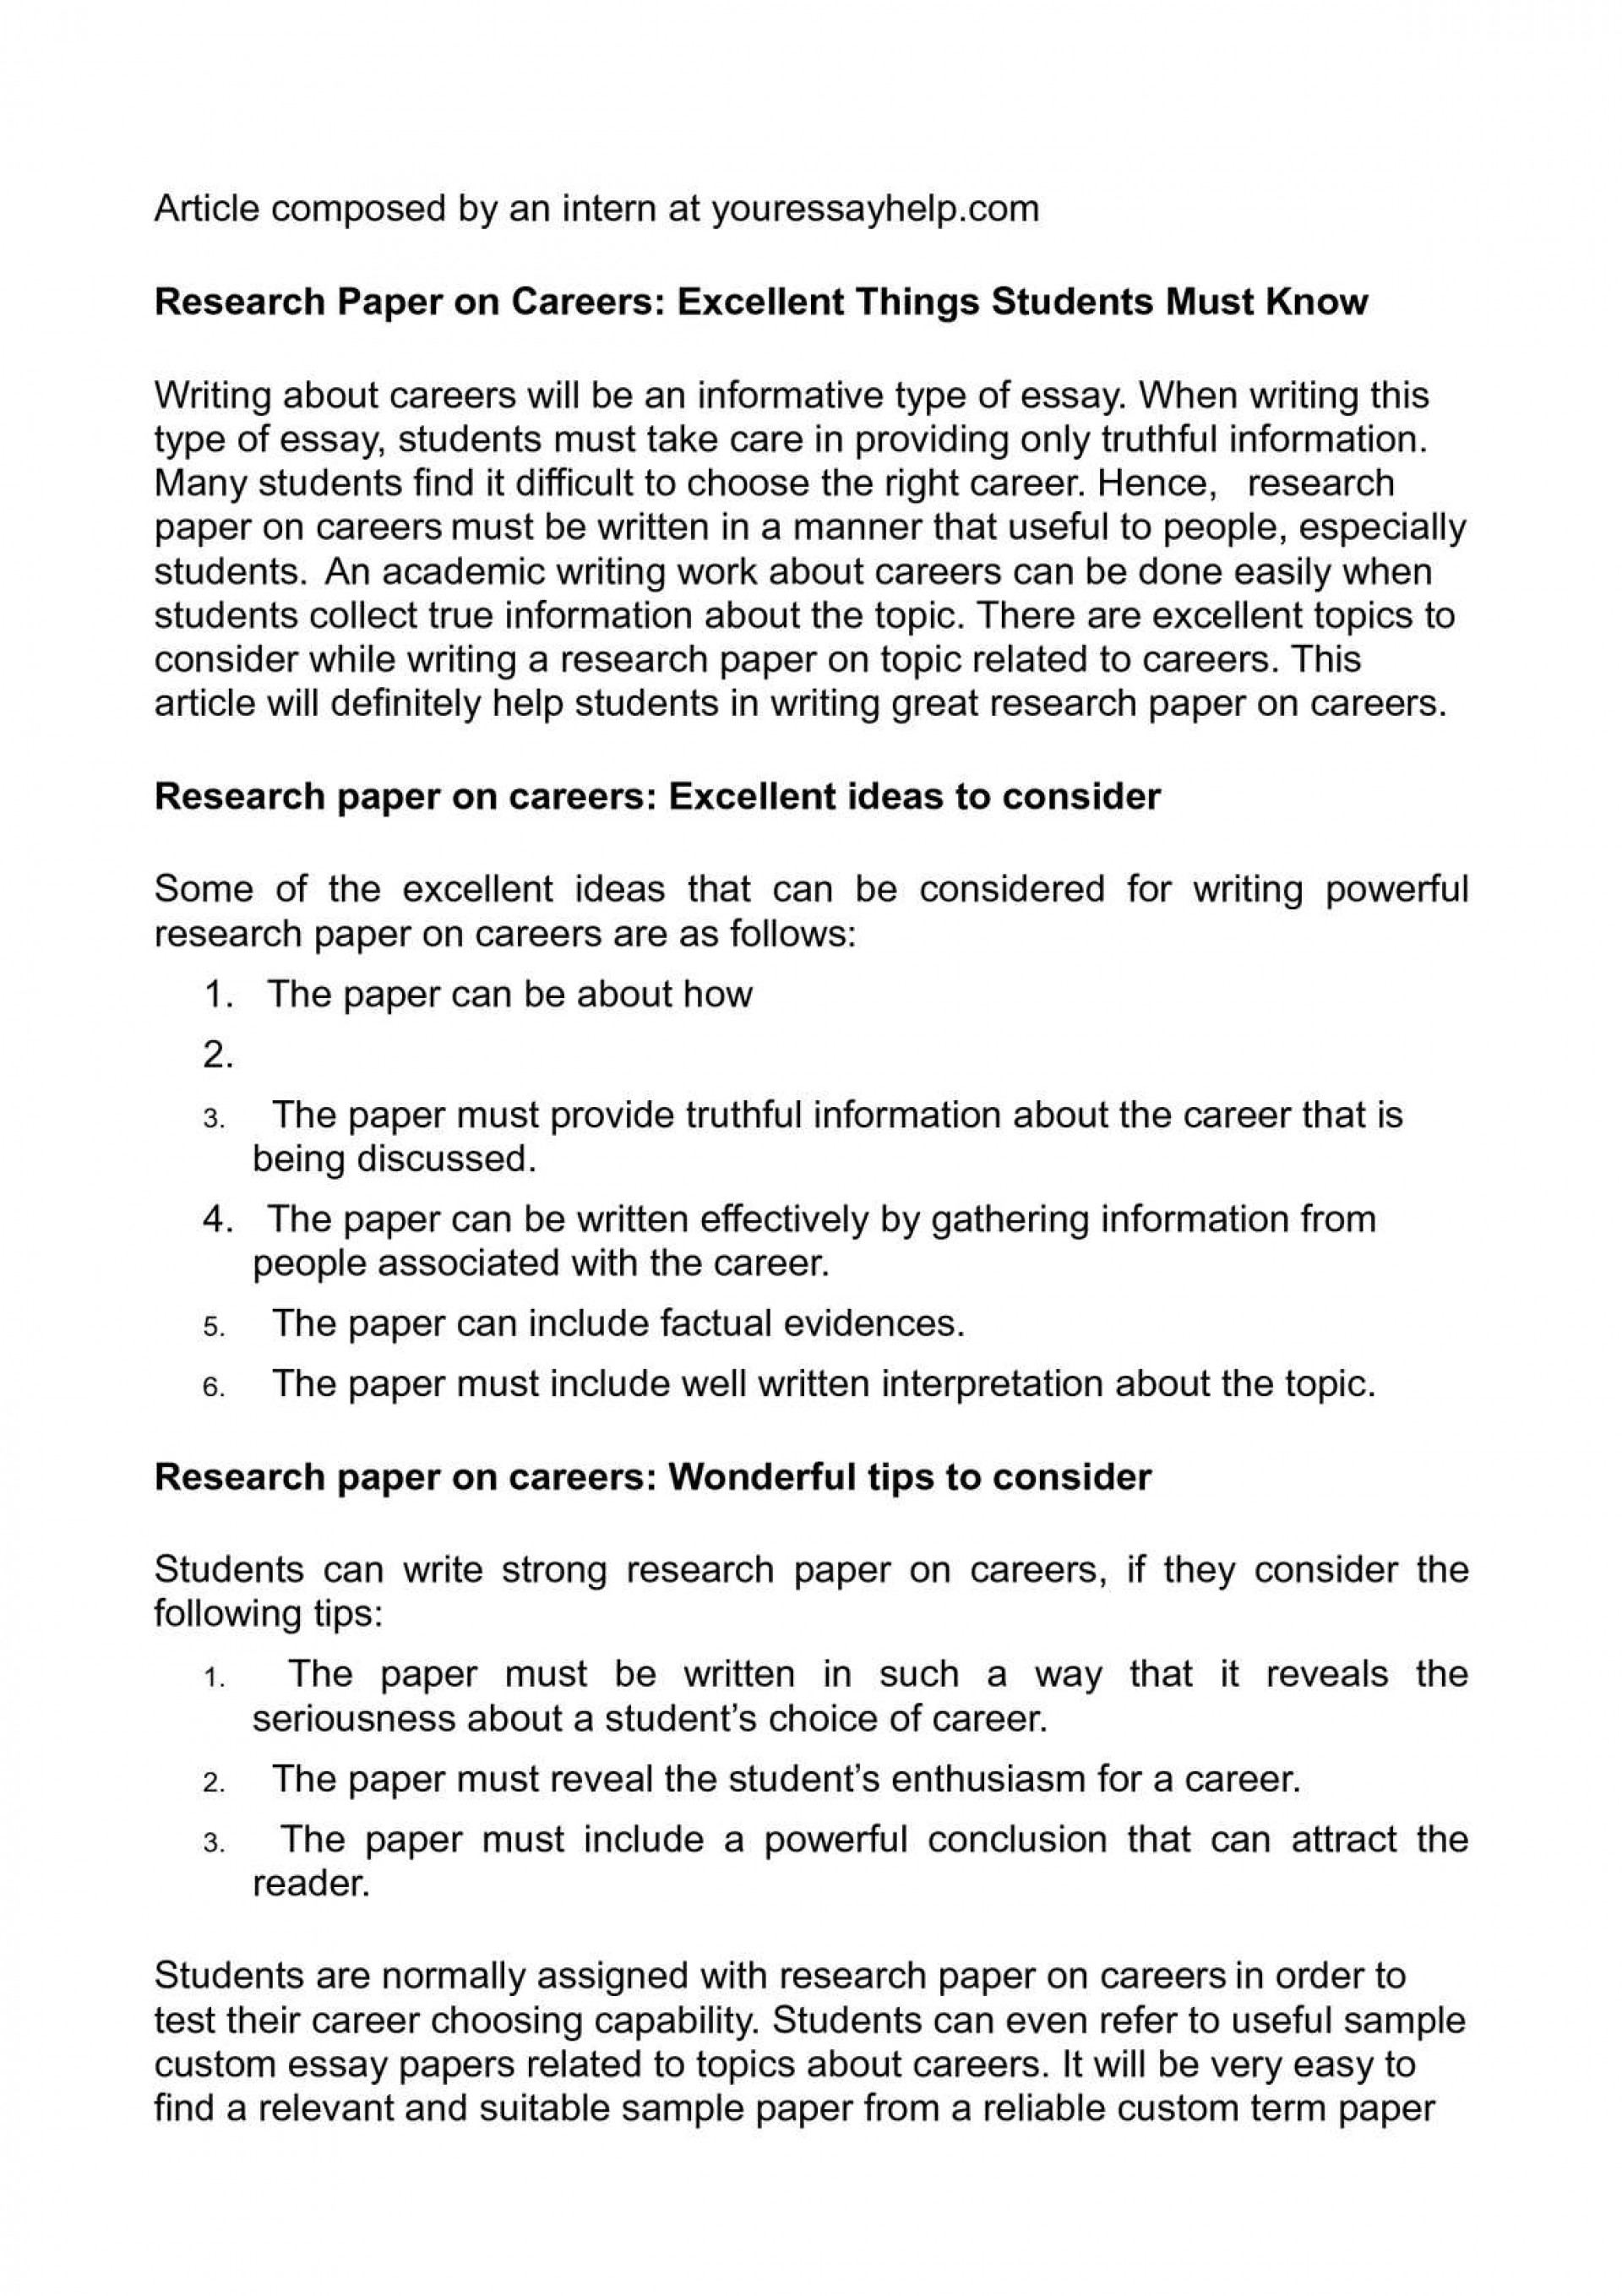 016 P1 Research Paper Career Related Singular Topics 1920